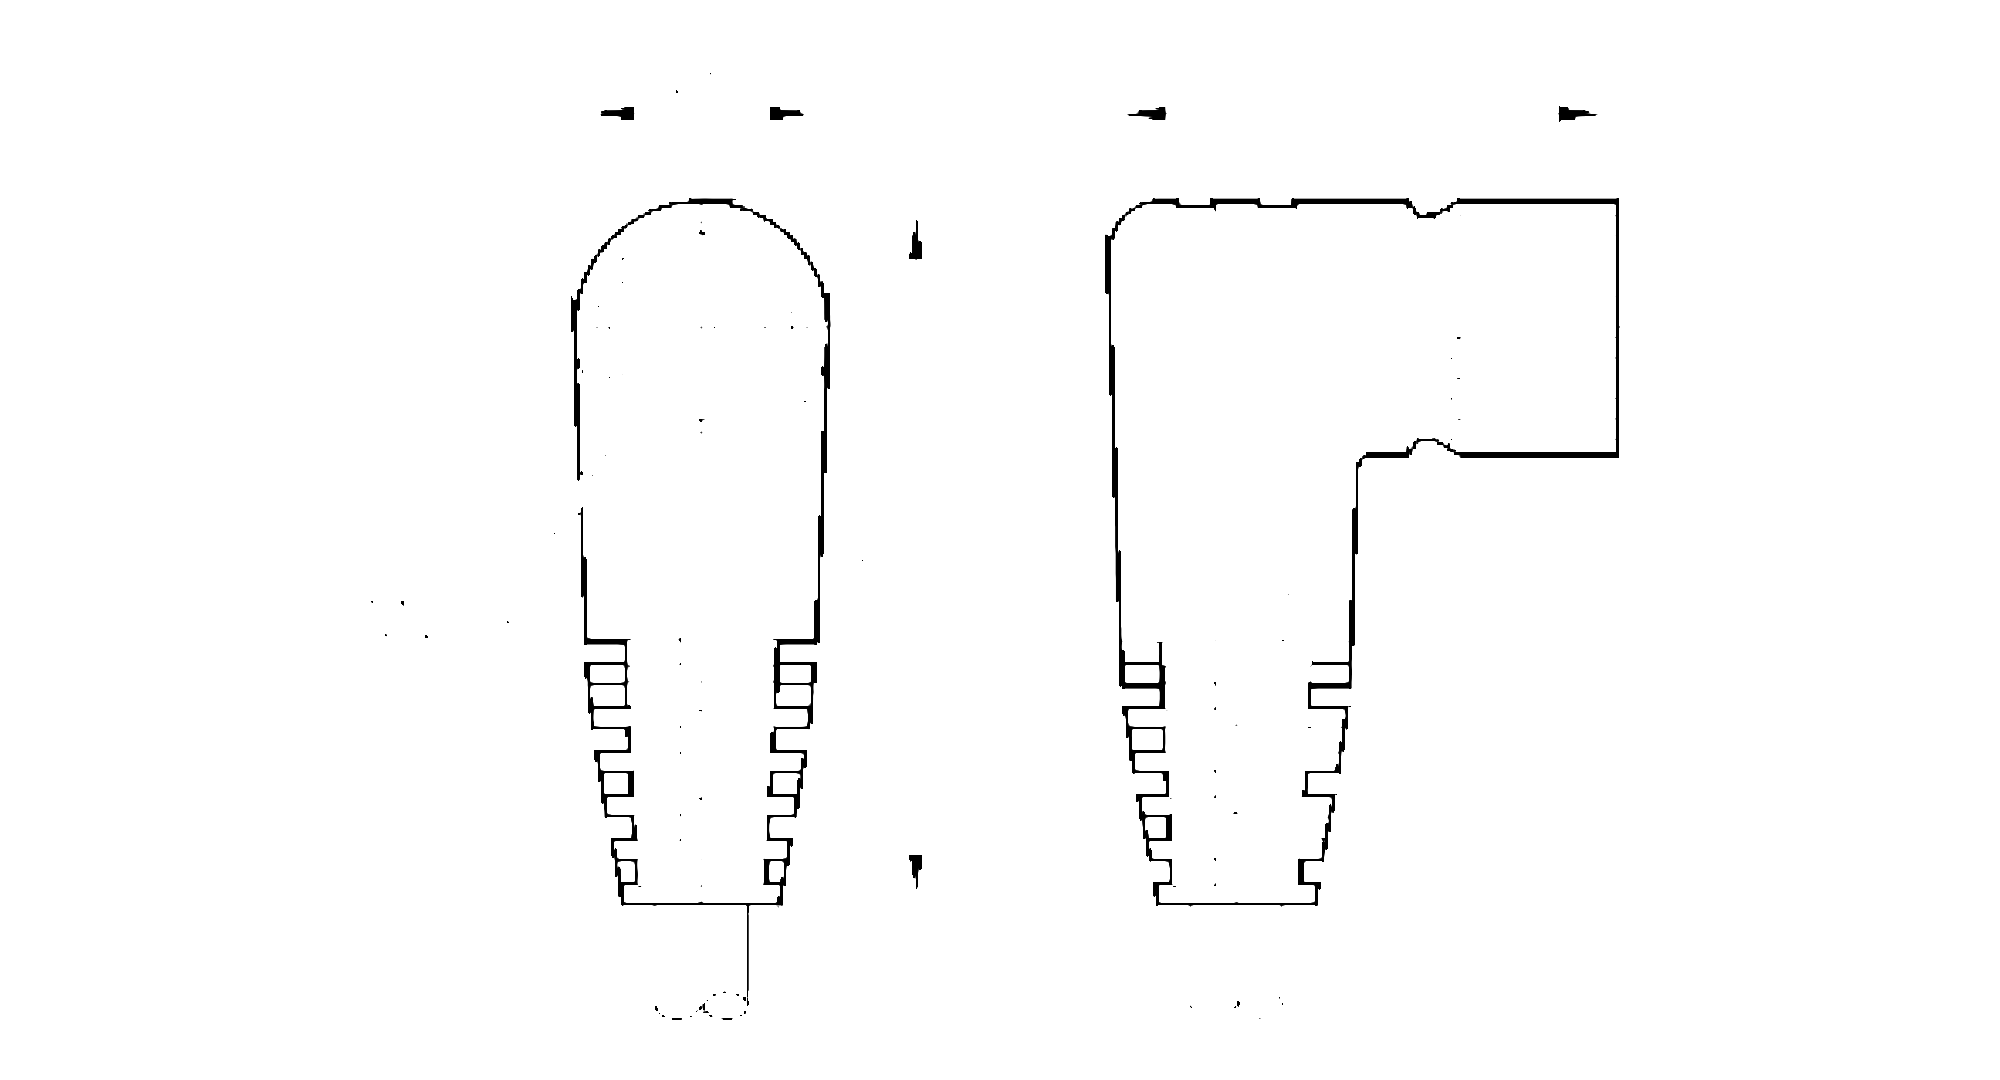 e11739 - connecting cable with socket